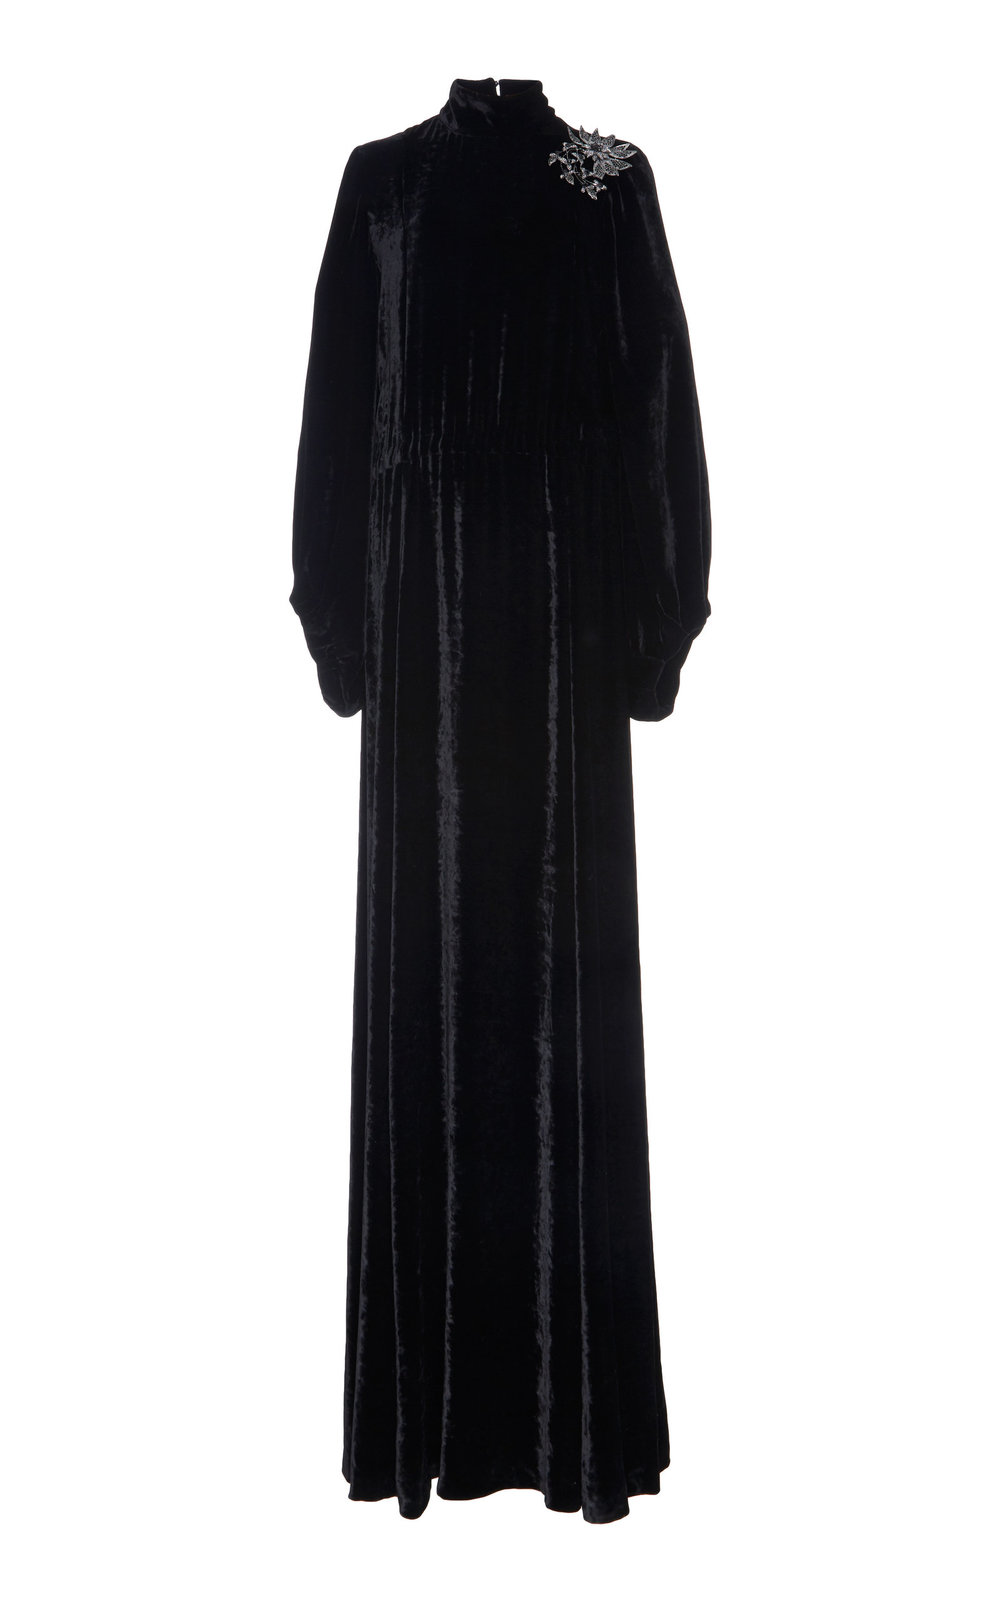 Acourtia Silk Velvet Dress - BLACK  A long-sleeved Silk Velvet dress with a dramatically elegant effect.  Flared sleeves and high neckline create a graceful look, while cinched dropped waistline defines the silhouette and accentuates the feminine shape.